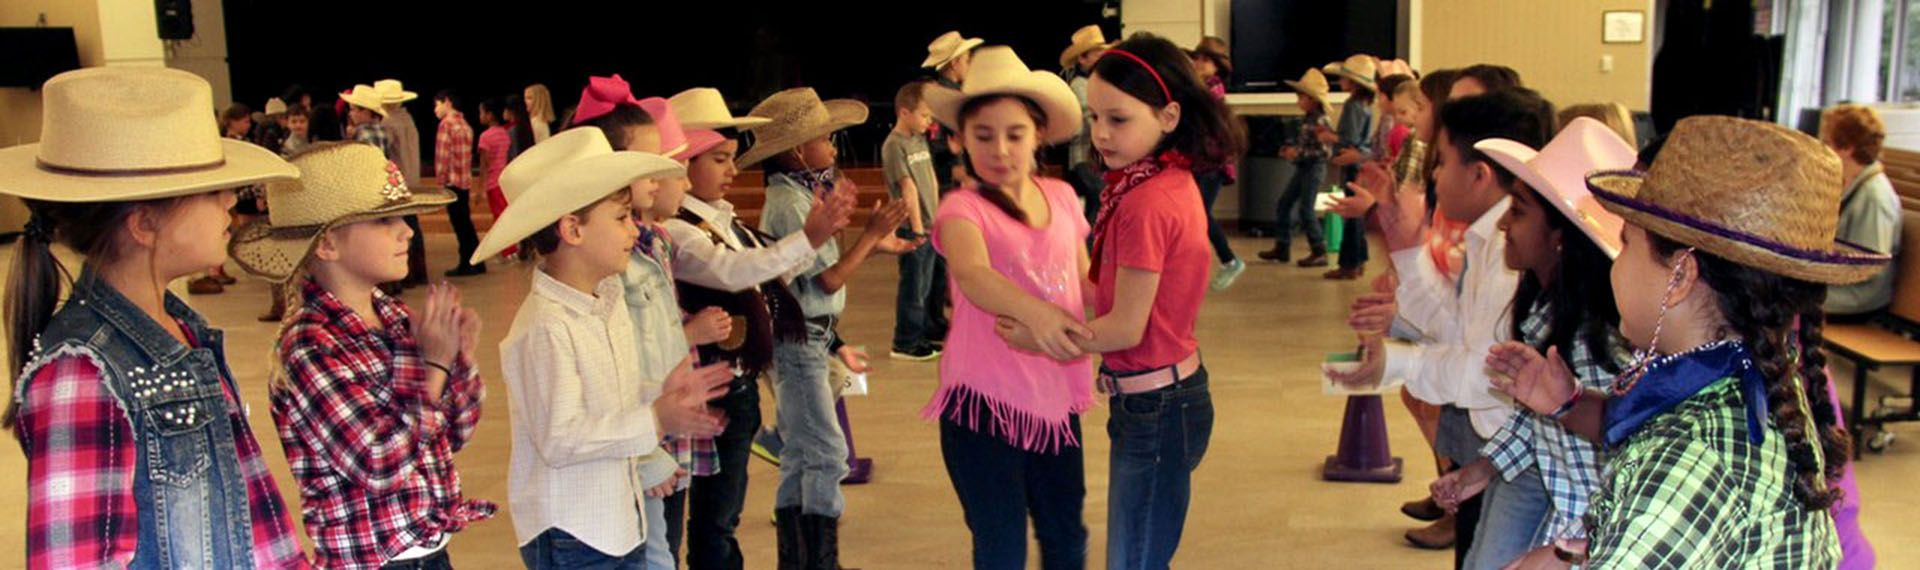 2nd Grade students dancing at a hoe down.